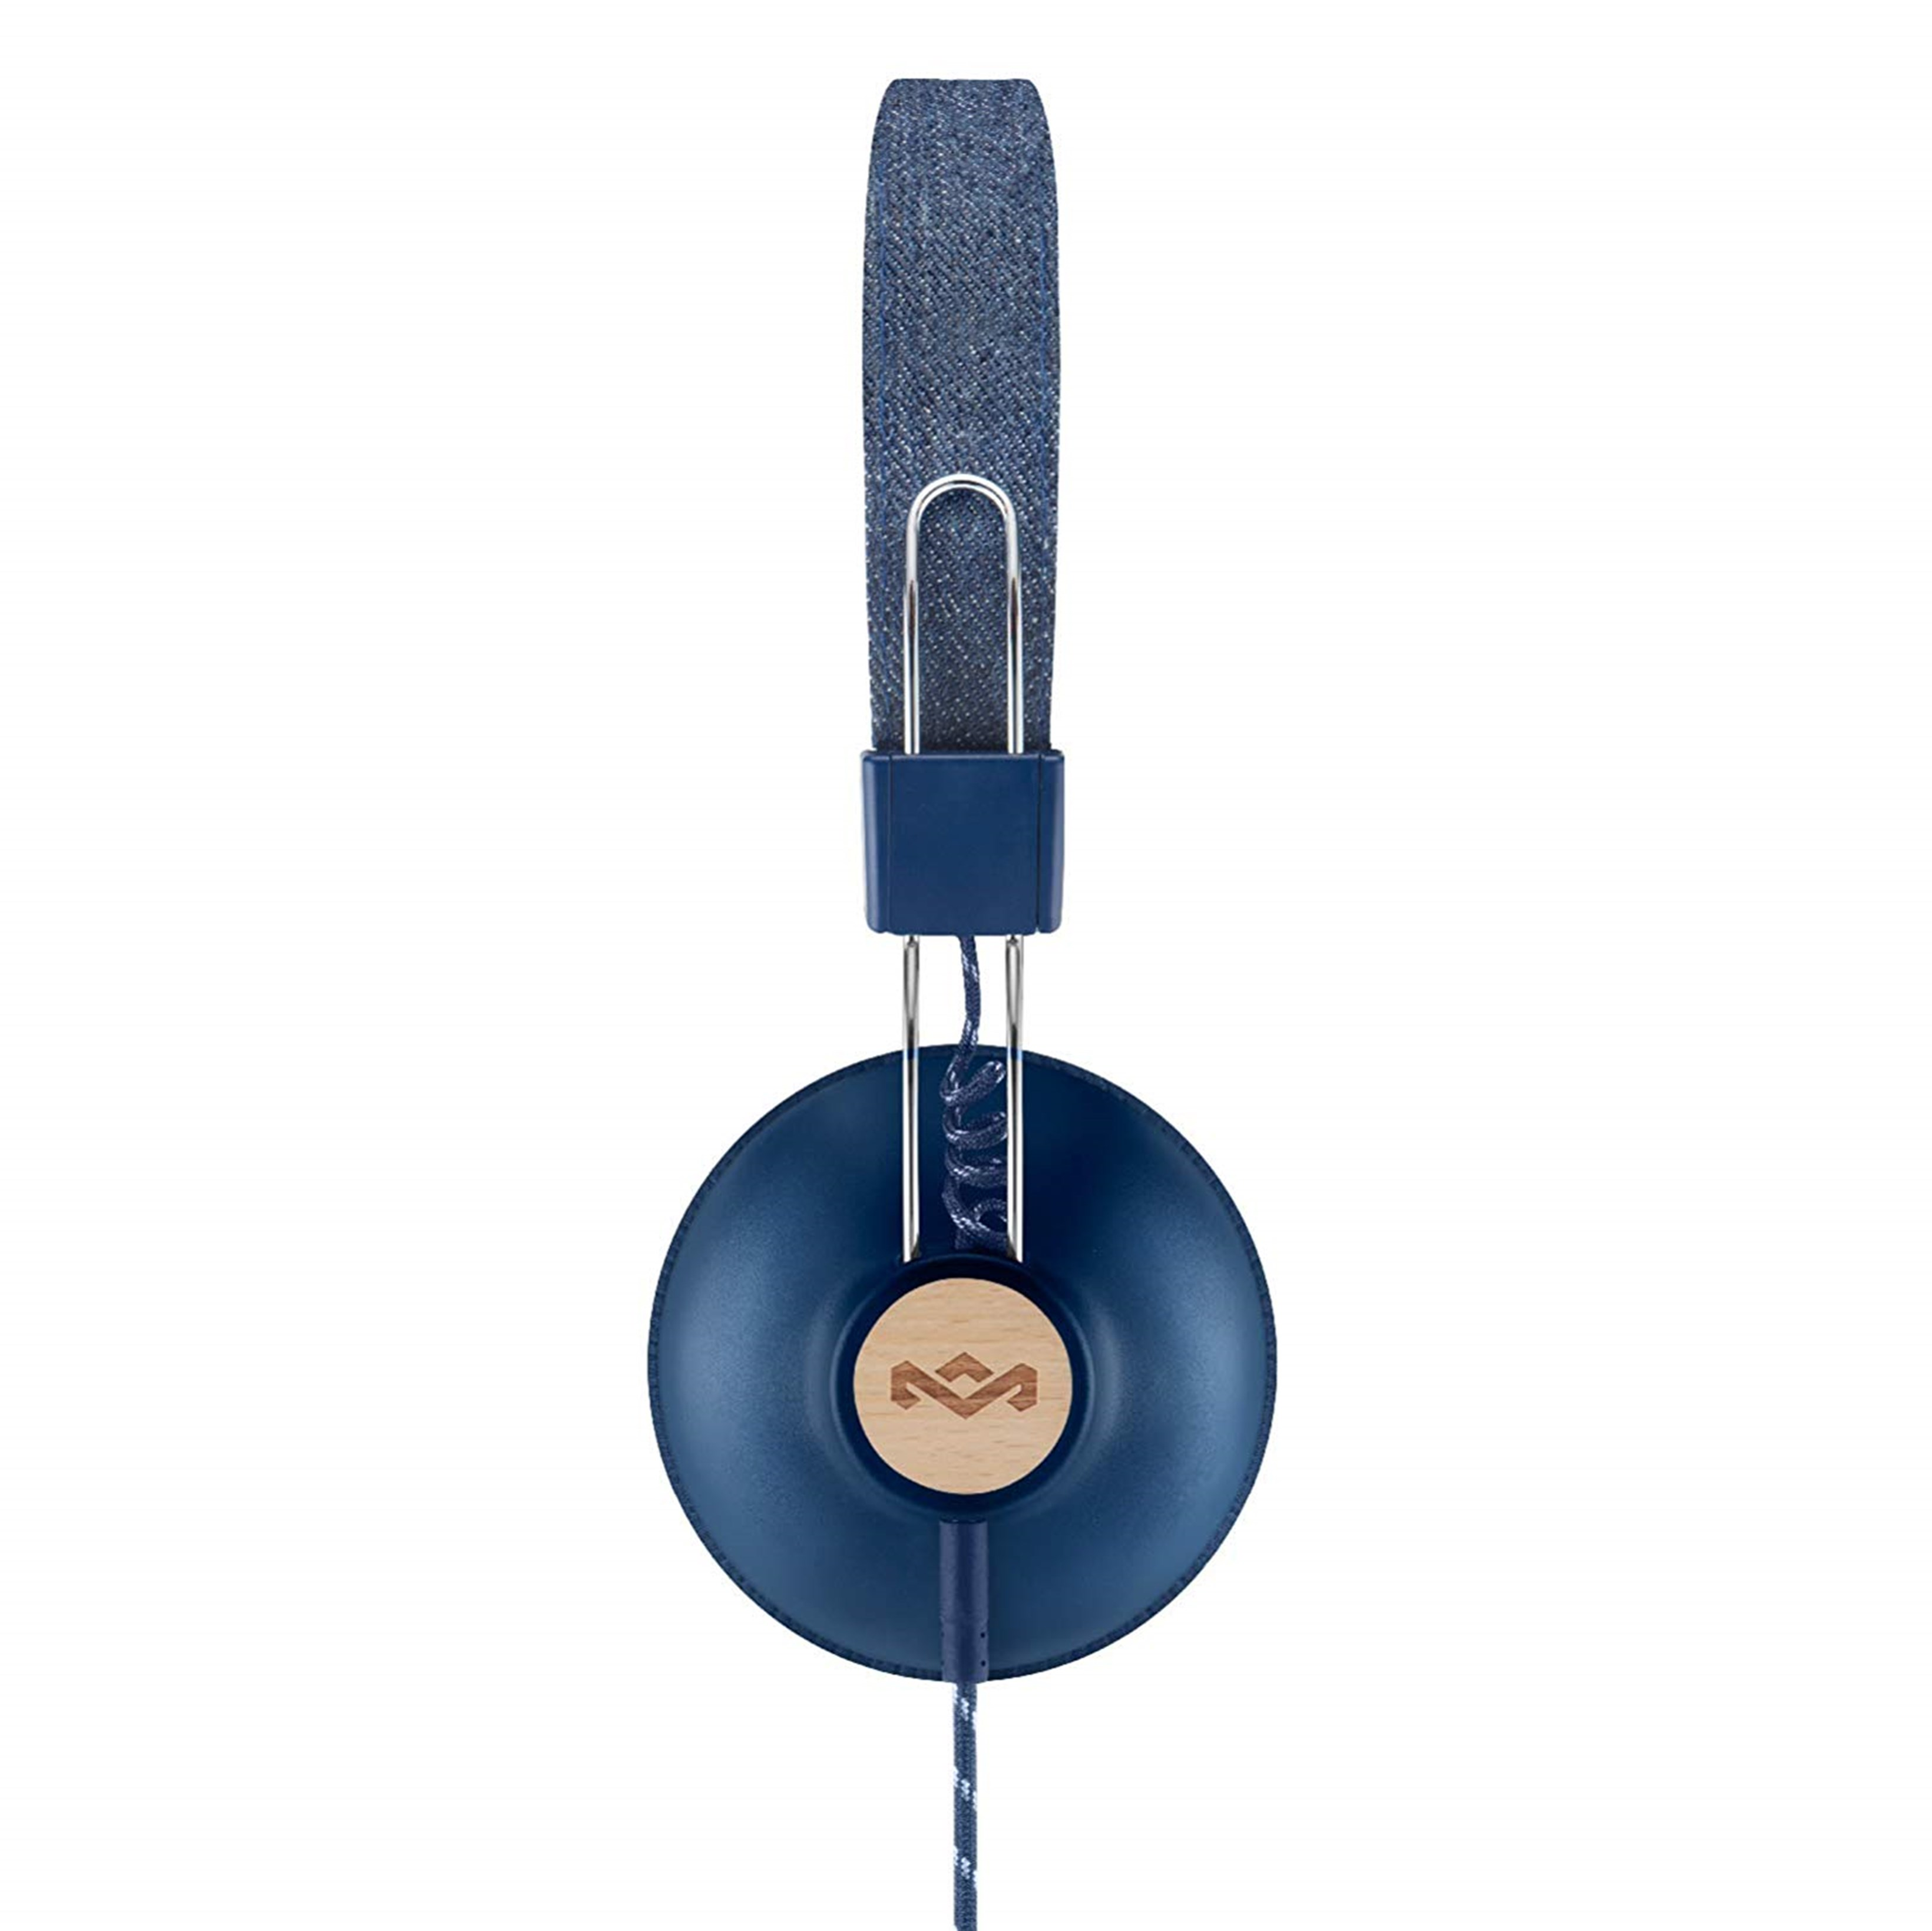 House Of Marley Positive Vibration 2.0 Denim Headphones w/Mic (hmv Exclusive) - 2